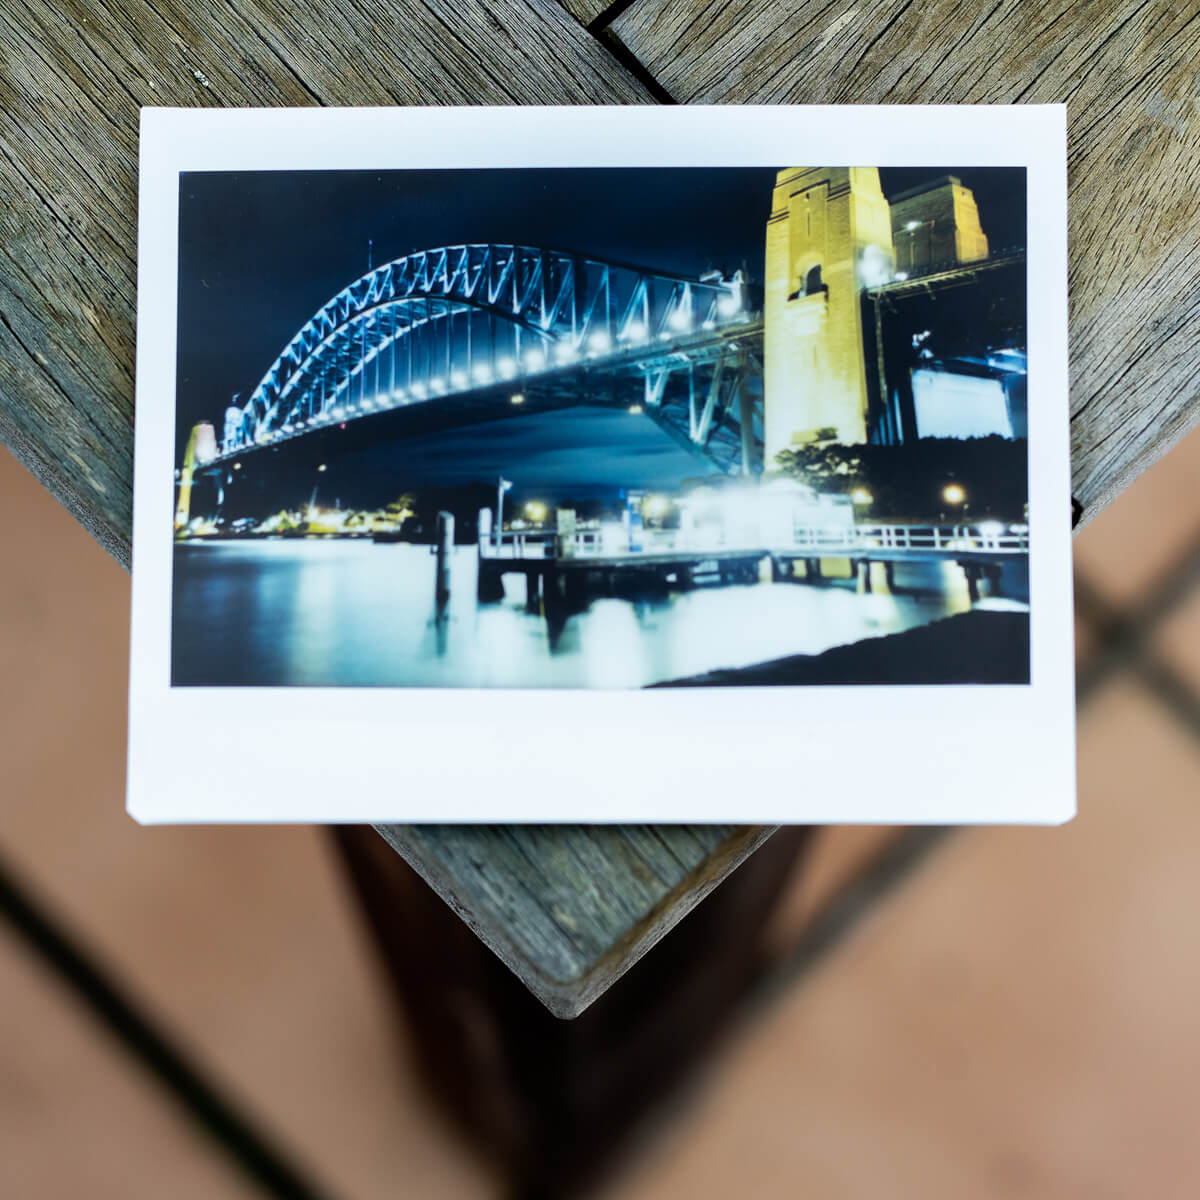 MiNT Instakon RF70 + Fujifilm Instax Wide - Bridge and Wharf